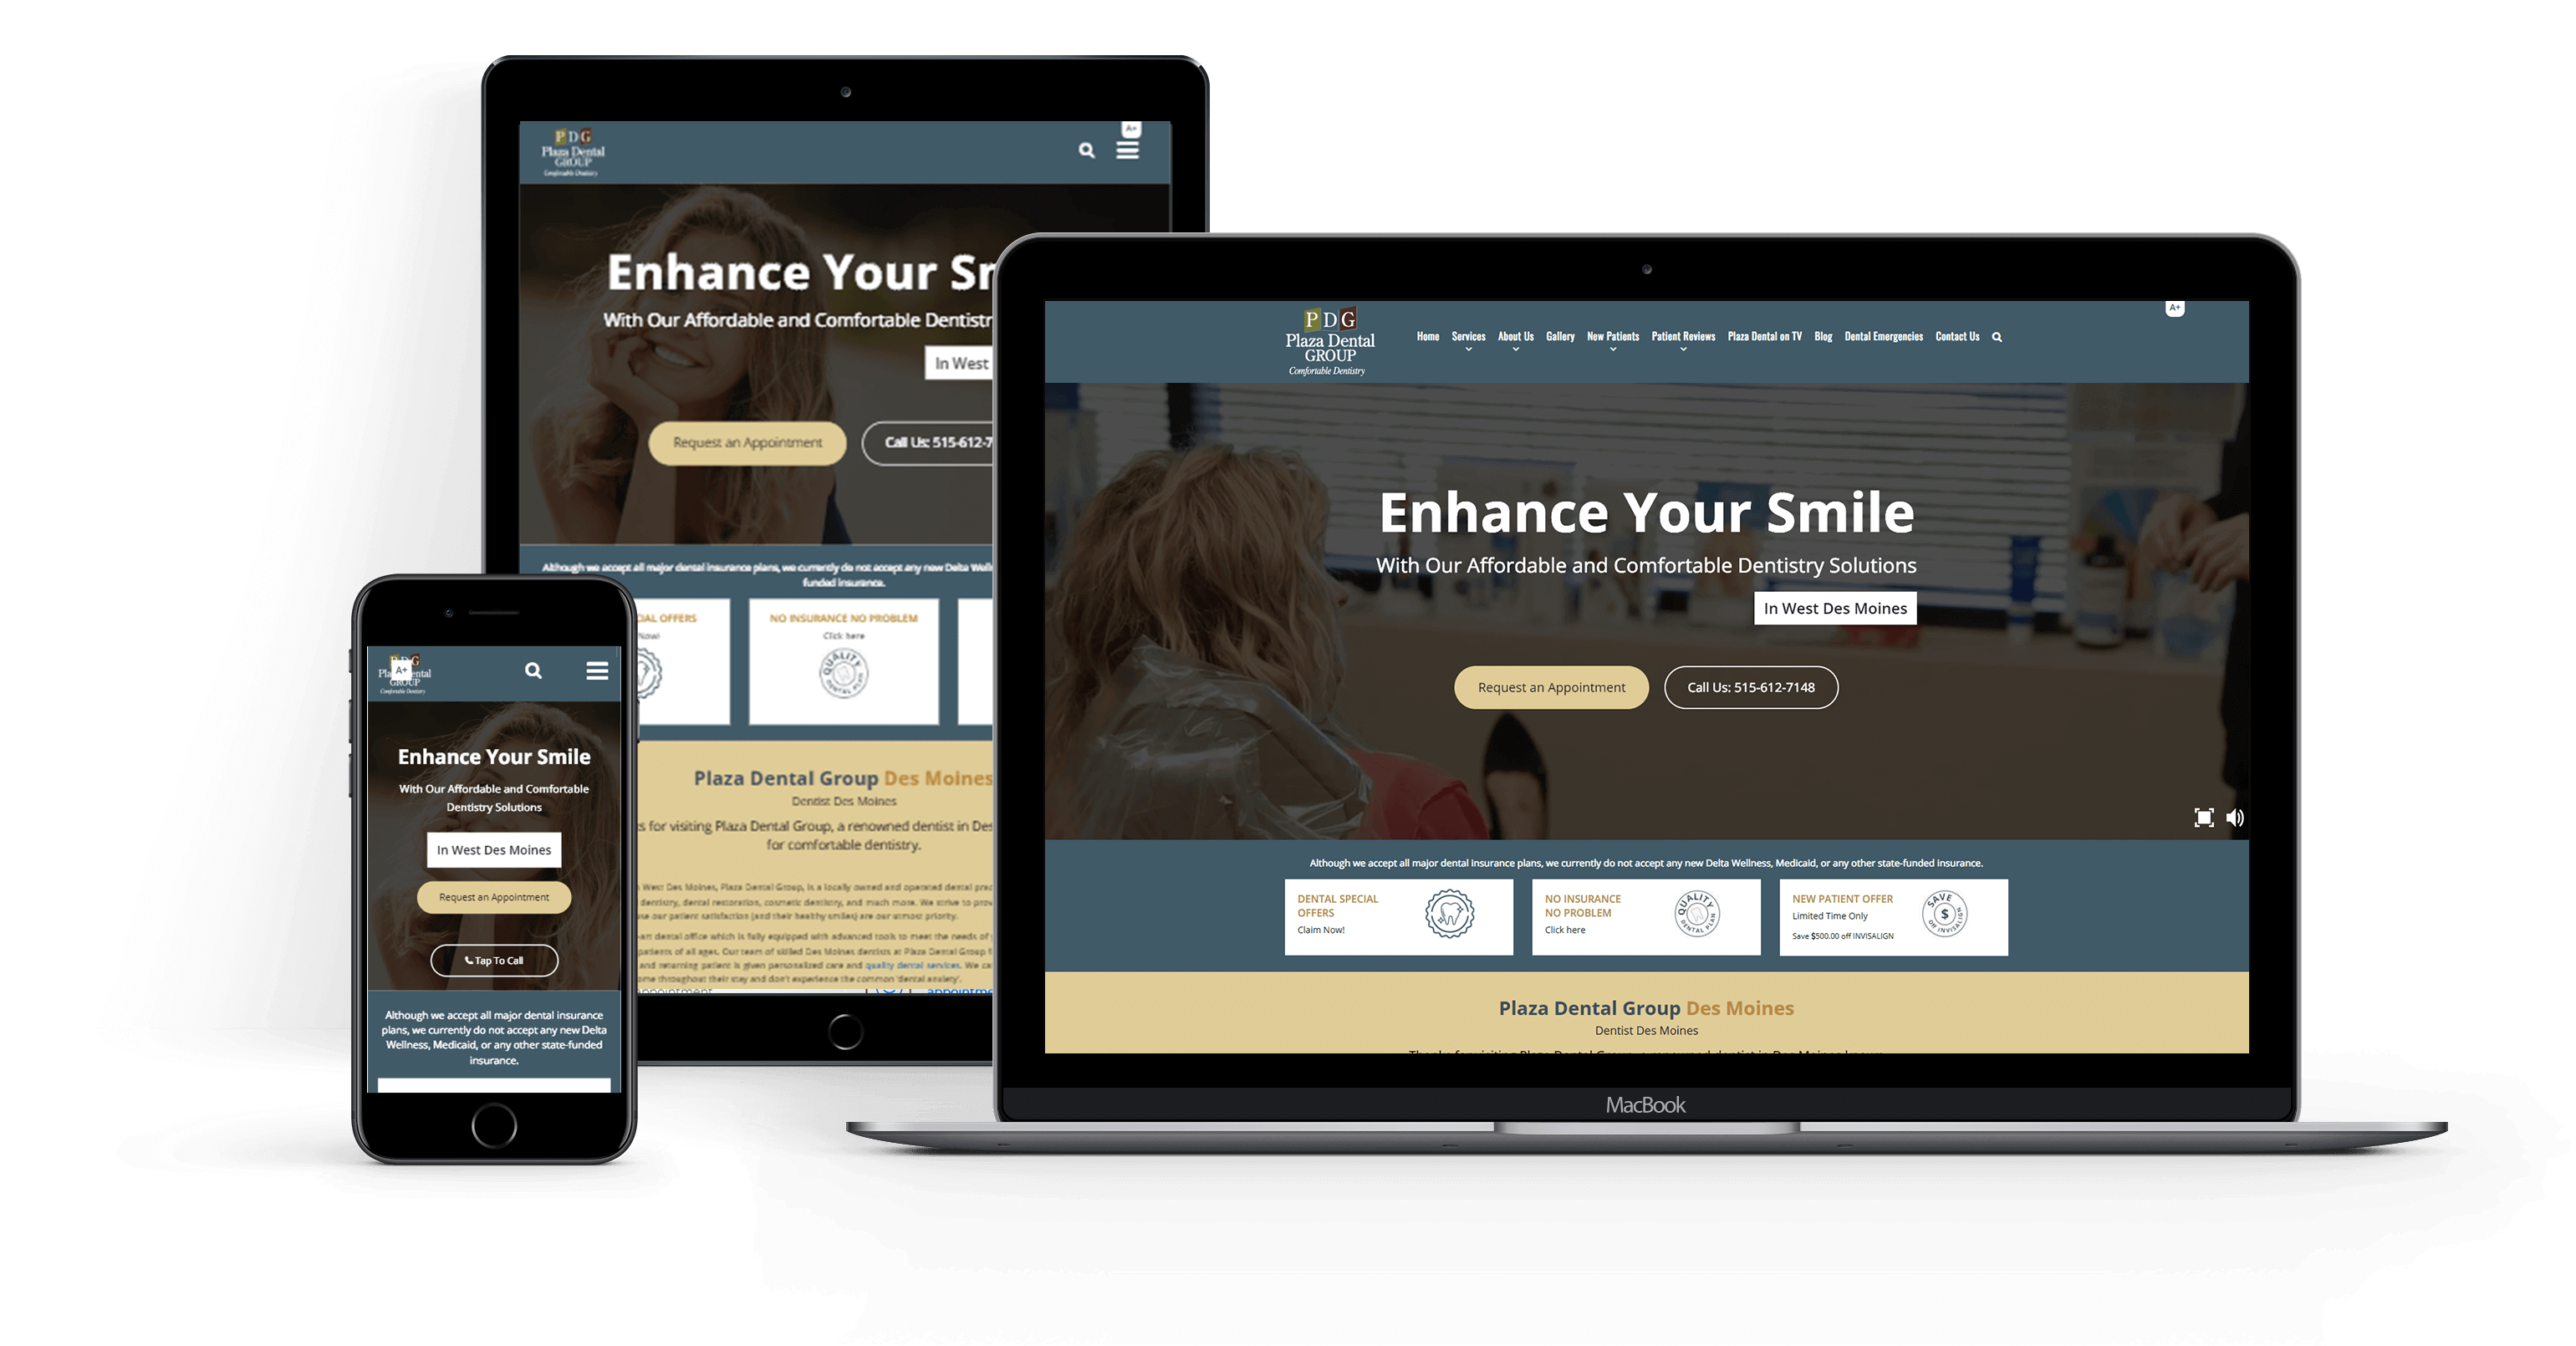 Dental Marketing Solution for Plaza Dental Group